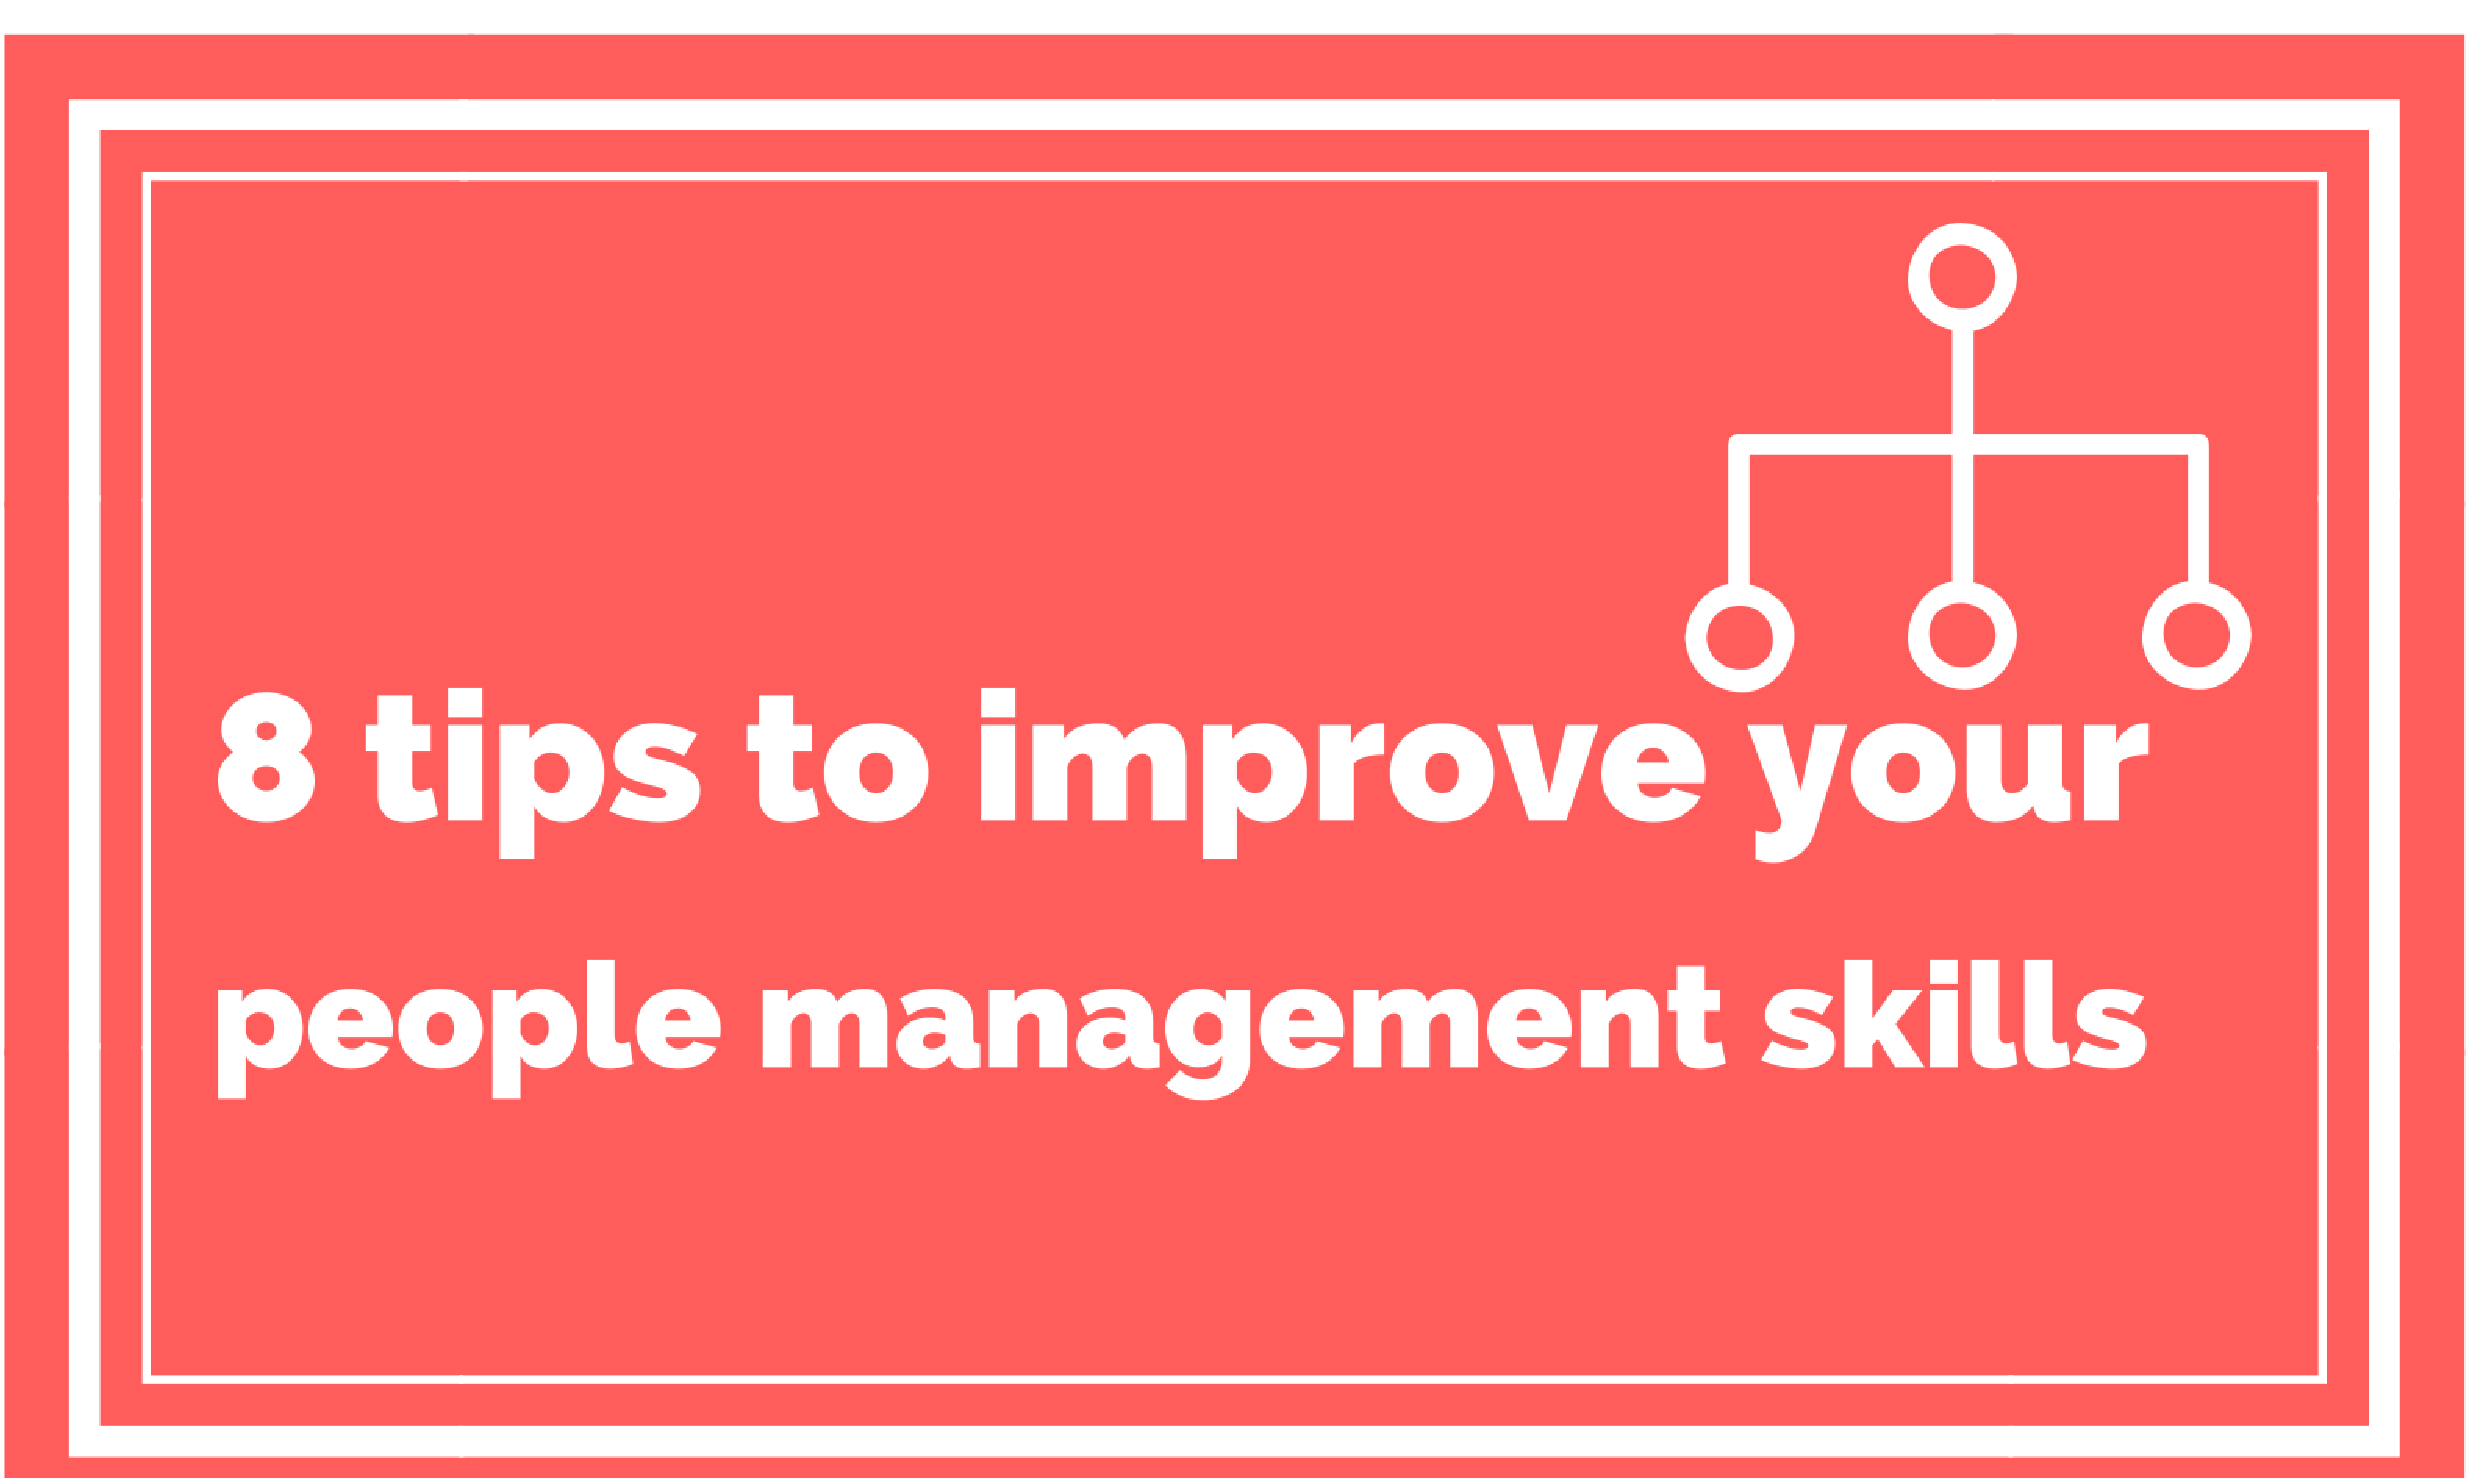 8 Tips To Improve Your People Management Skills